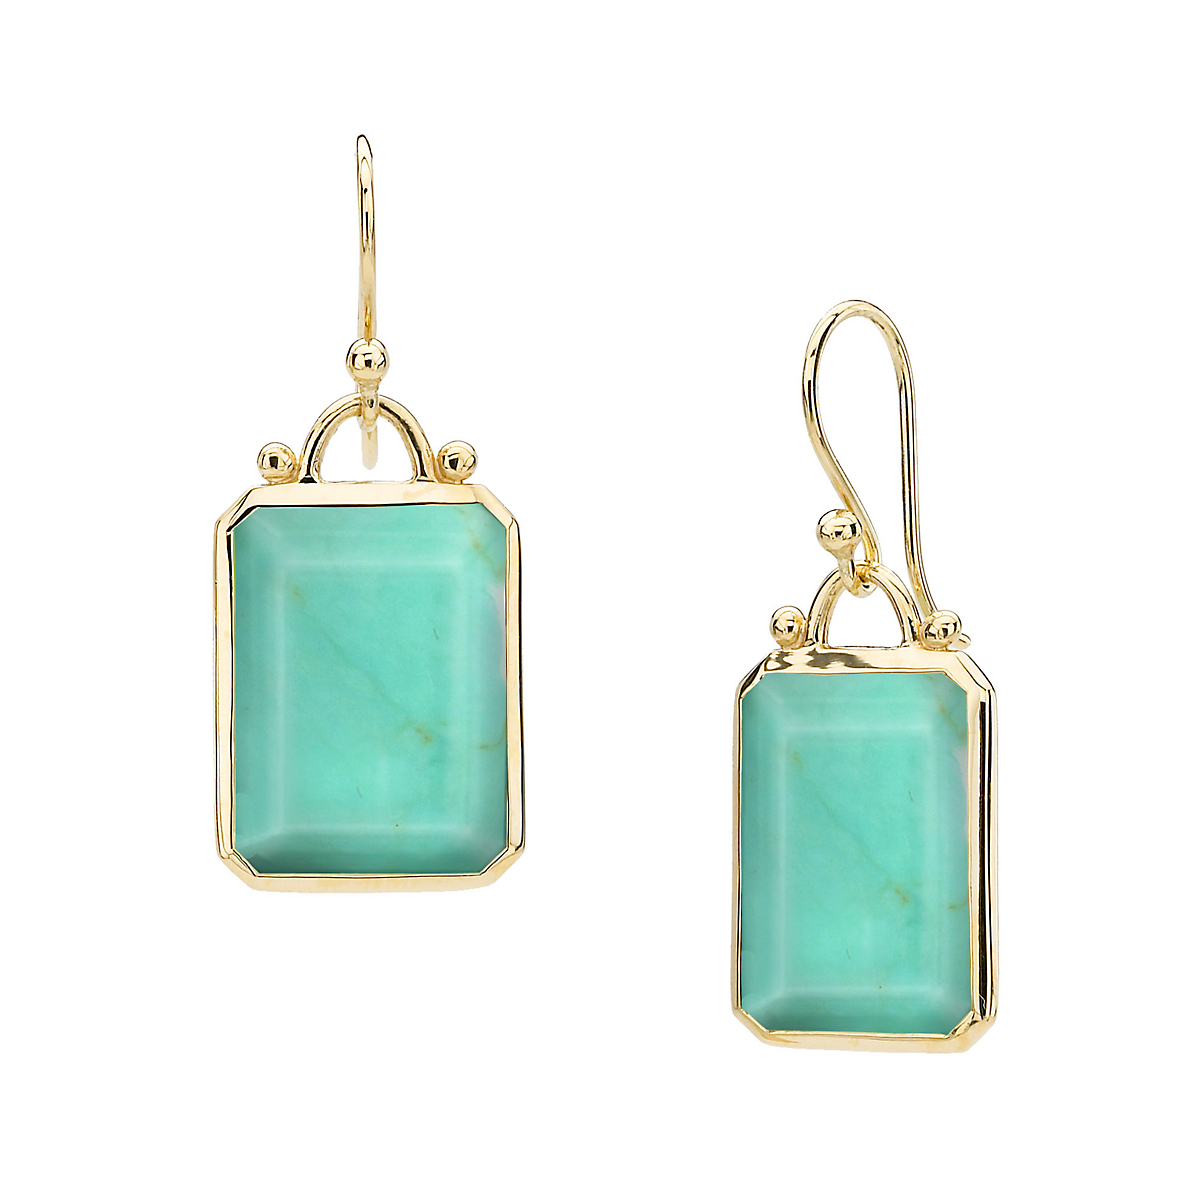 Elizabeth Showers Turquoise Deco Drop Earrings